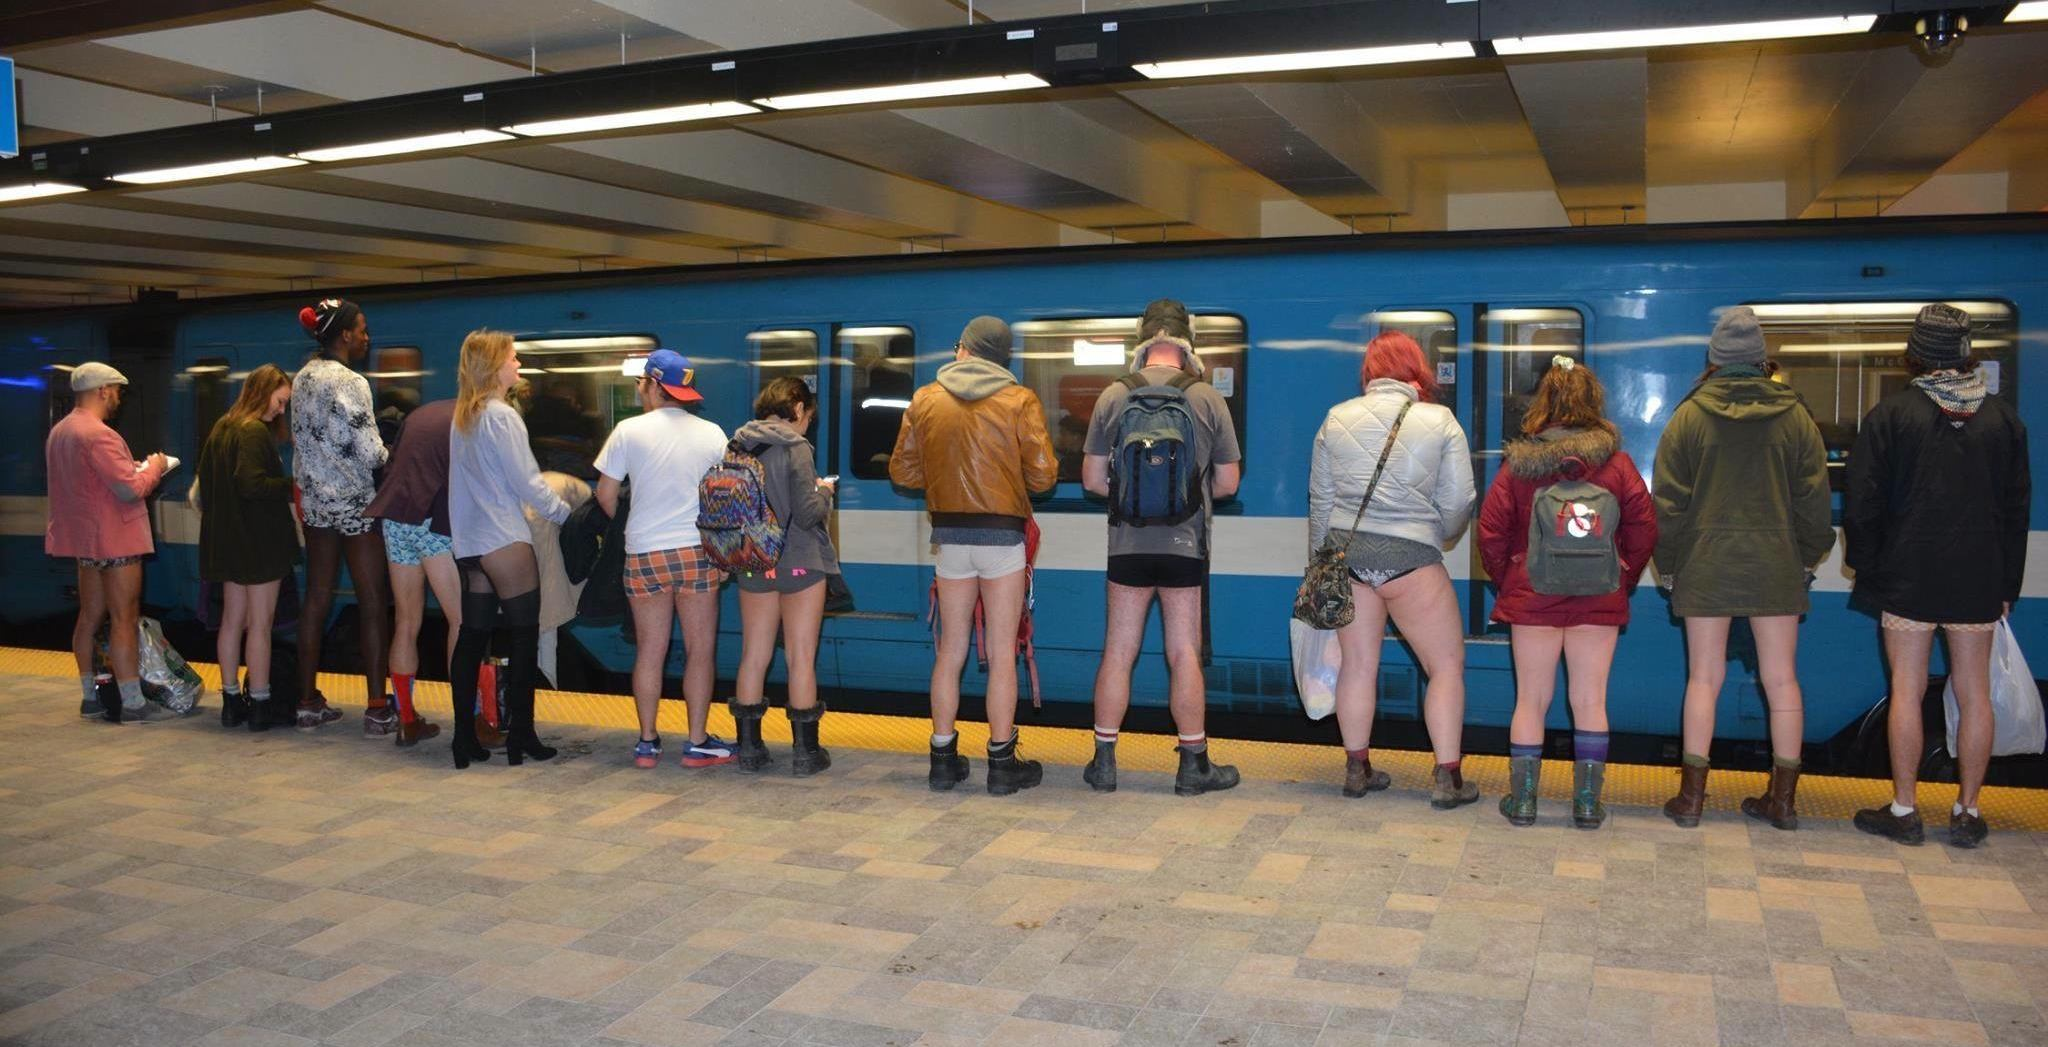 Montreal's 'No Pants' metro ride is happening January 13